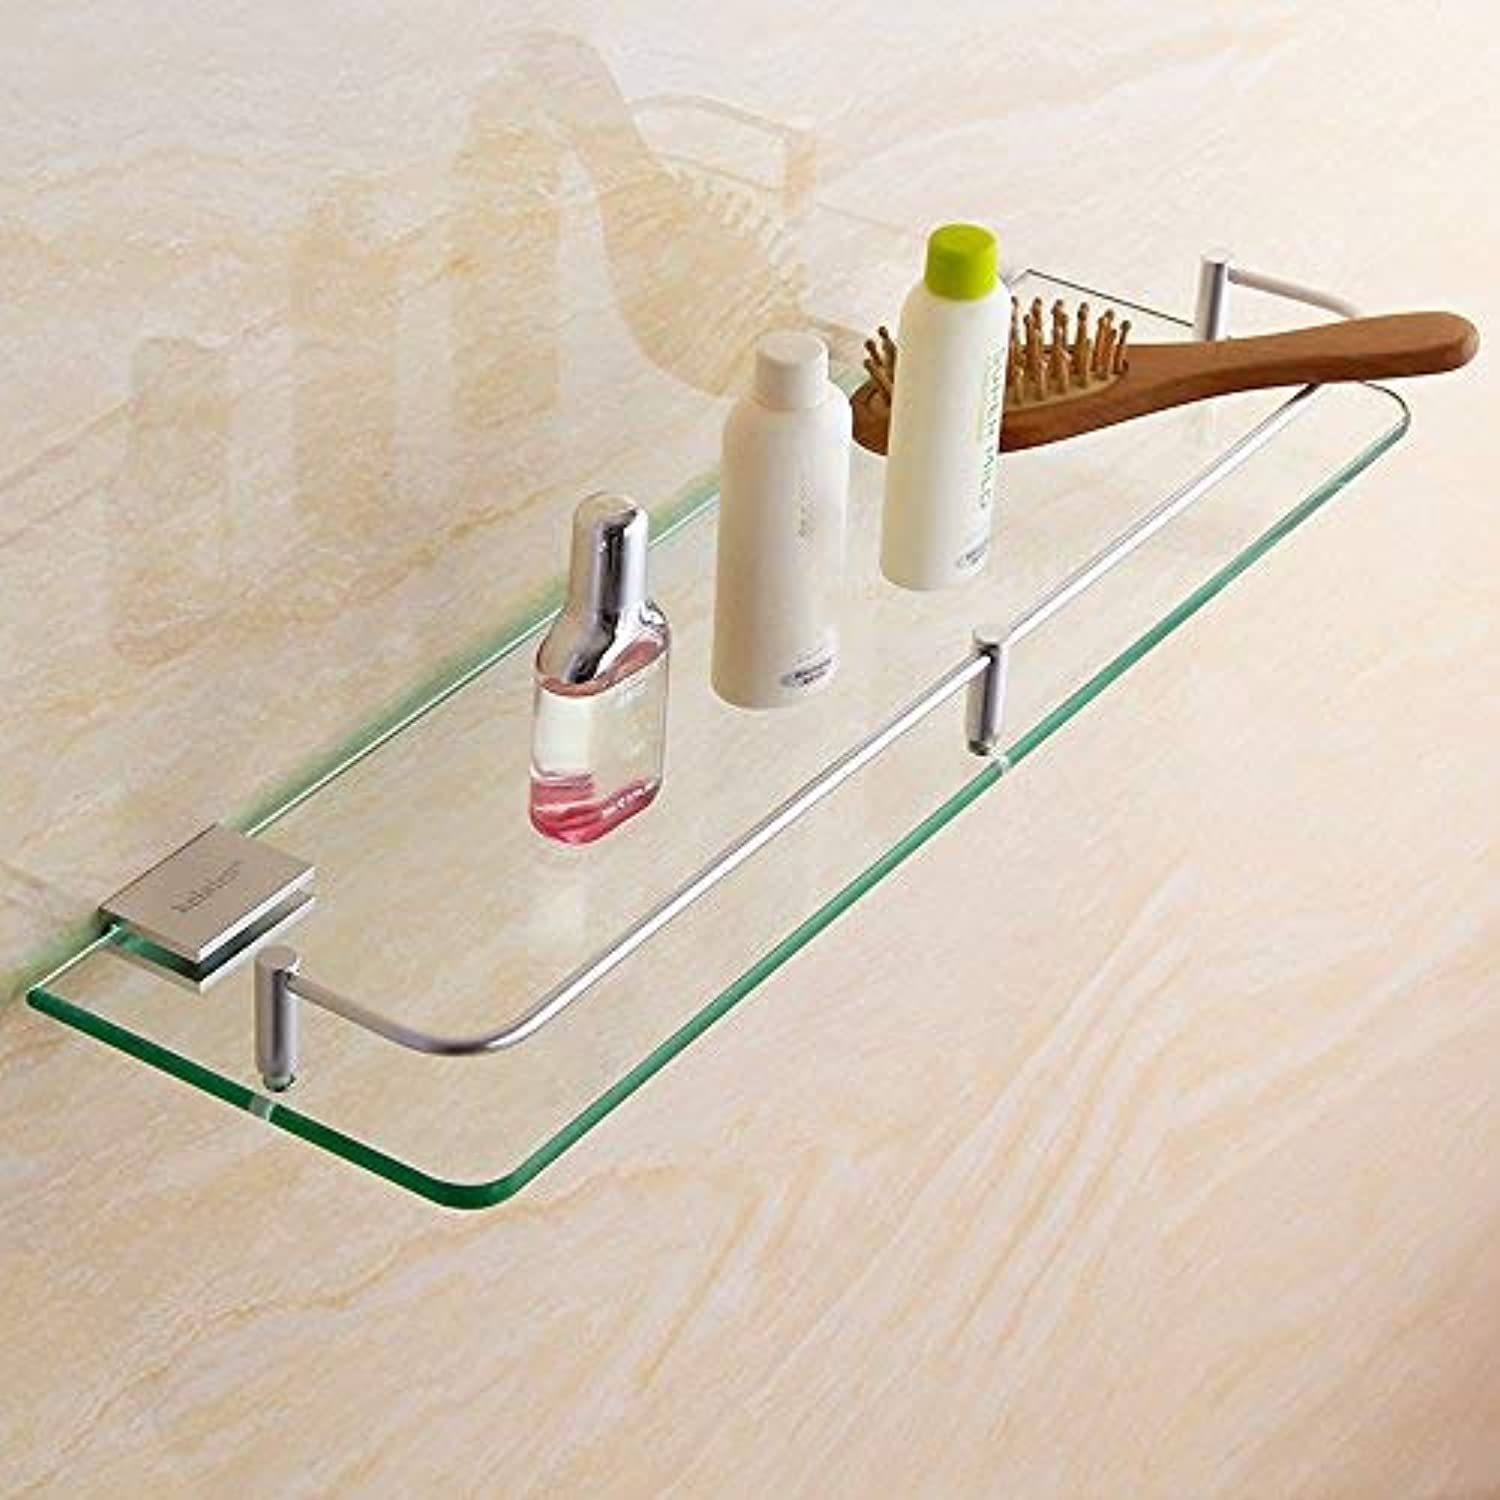 BAIF Bathroom Rack ZHIRONG Space Aluminum Glass 1 Story Wall Hanging Shelf 8 Sizes (Size   30  13cm)